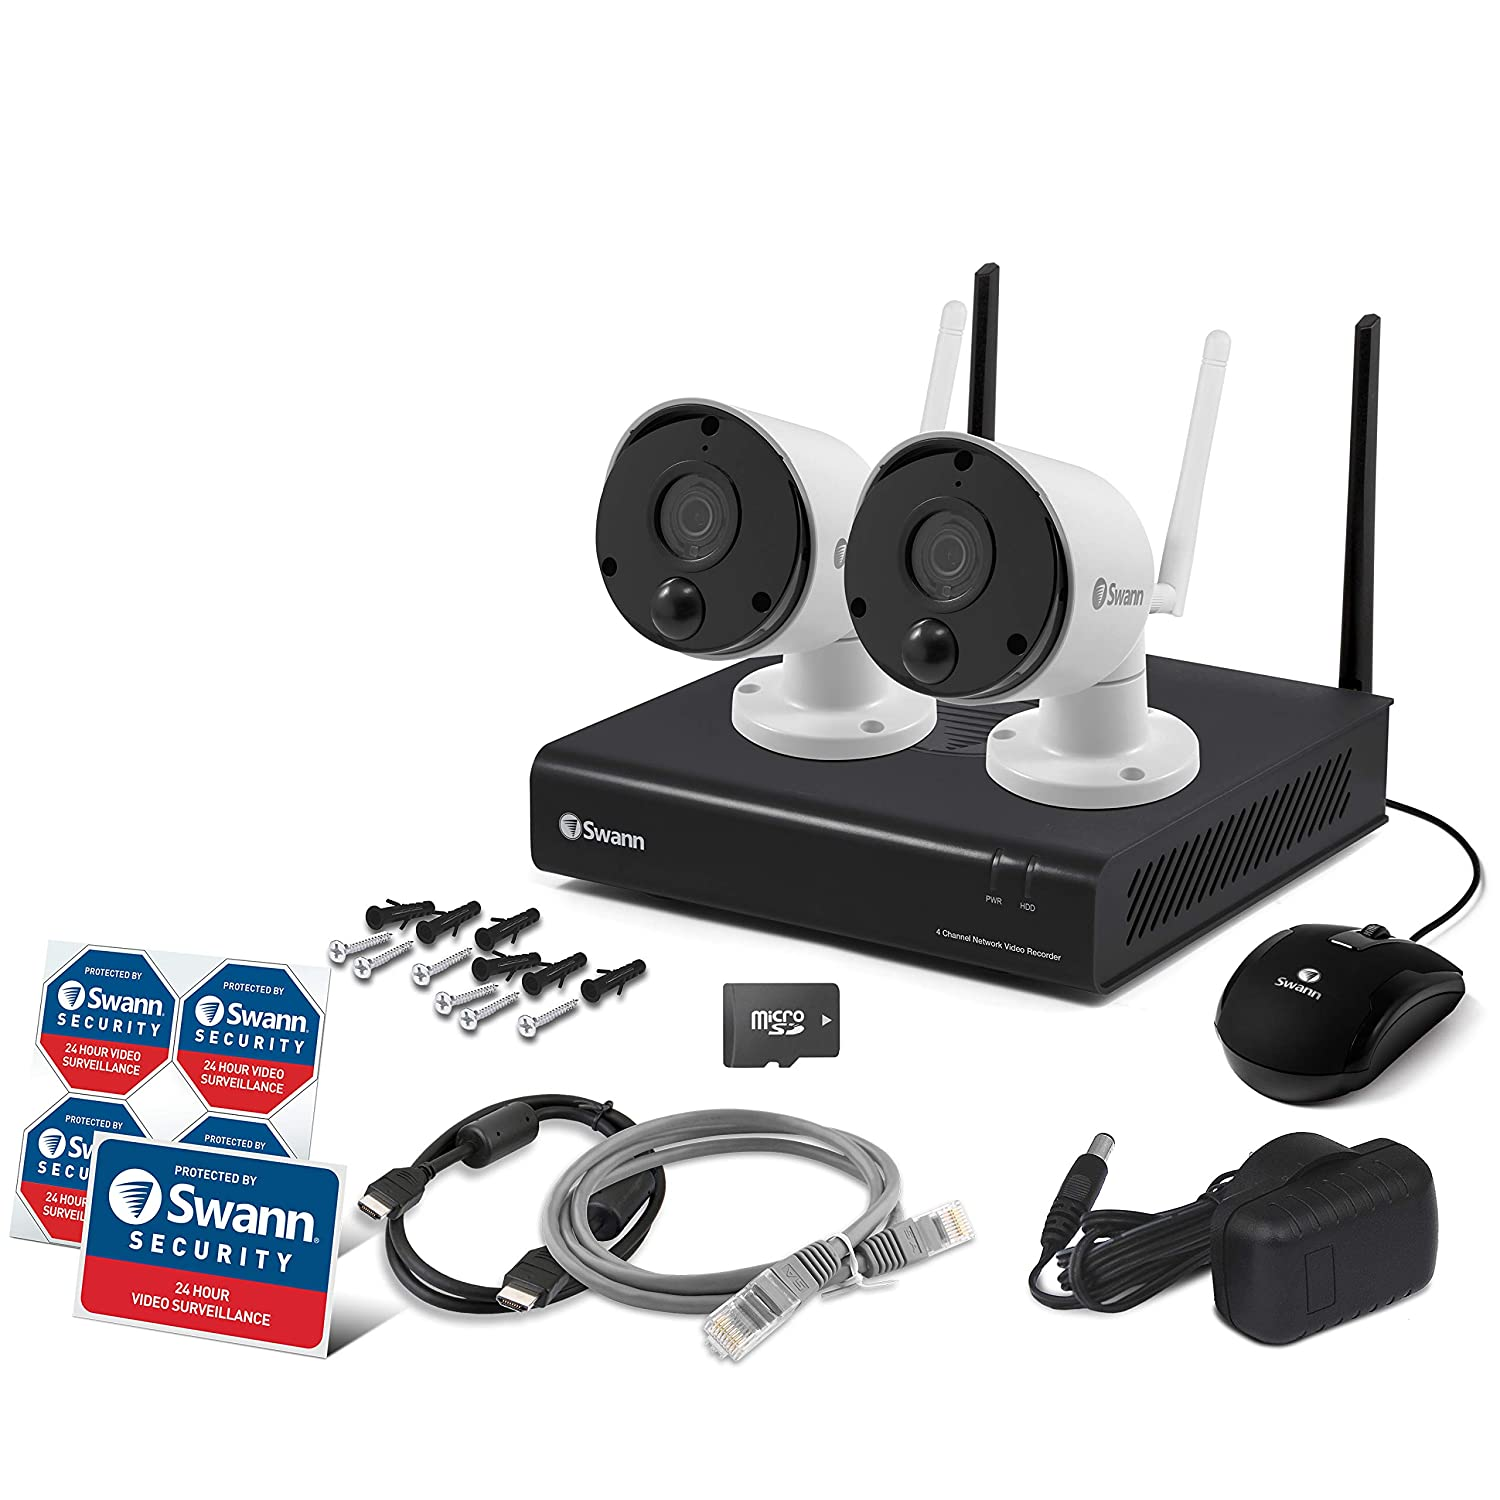 Swann 4 Channel Wi-Fi Security System: NVW-490 NVR + 2 x Wi-Fi